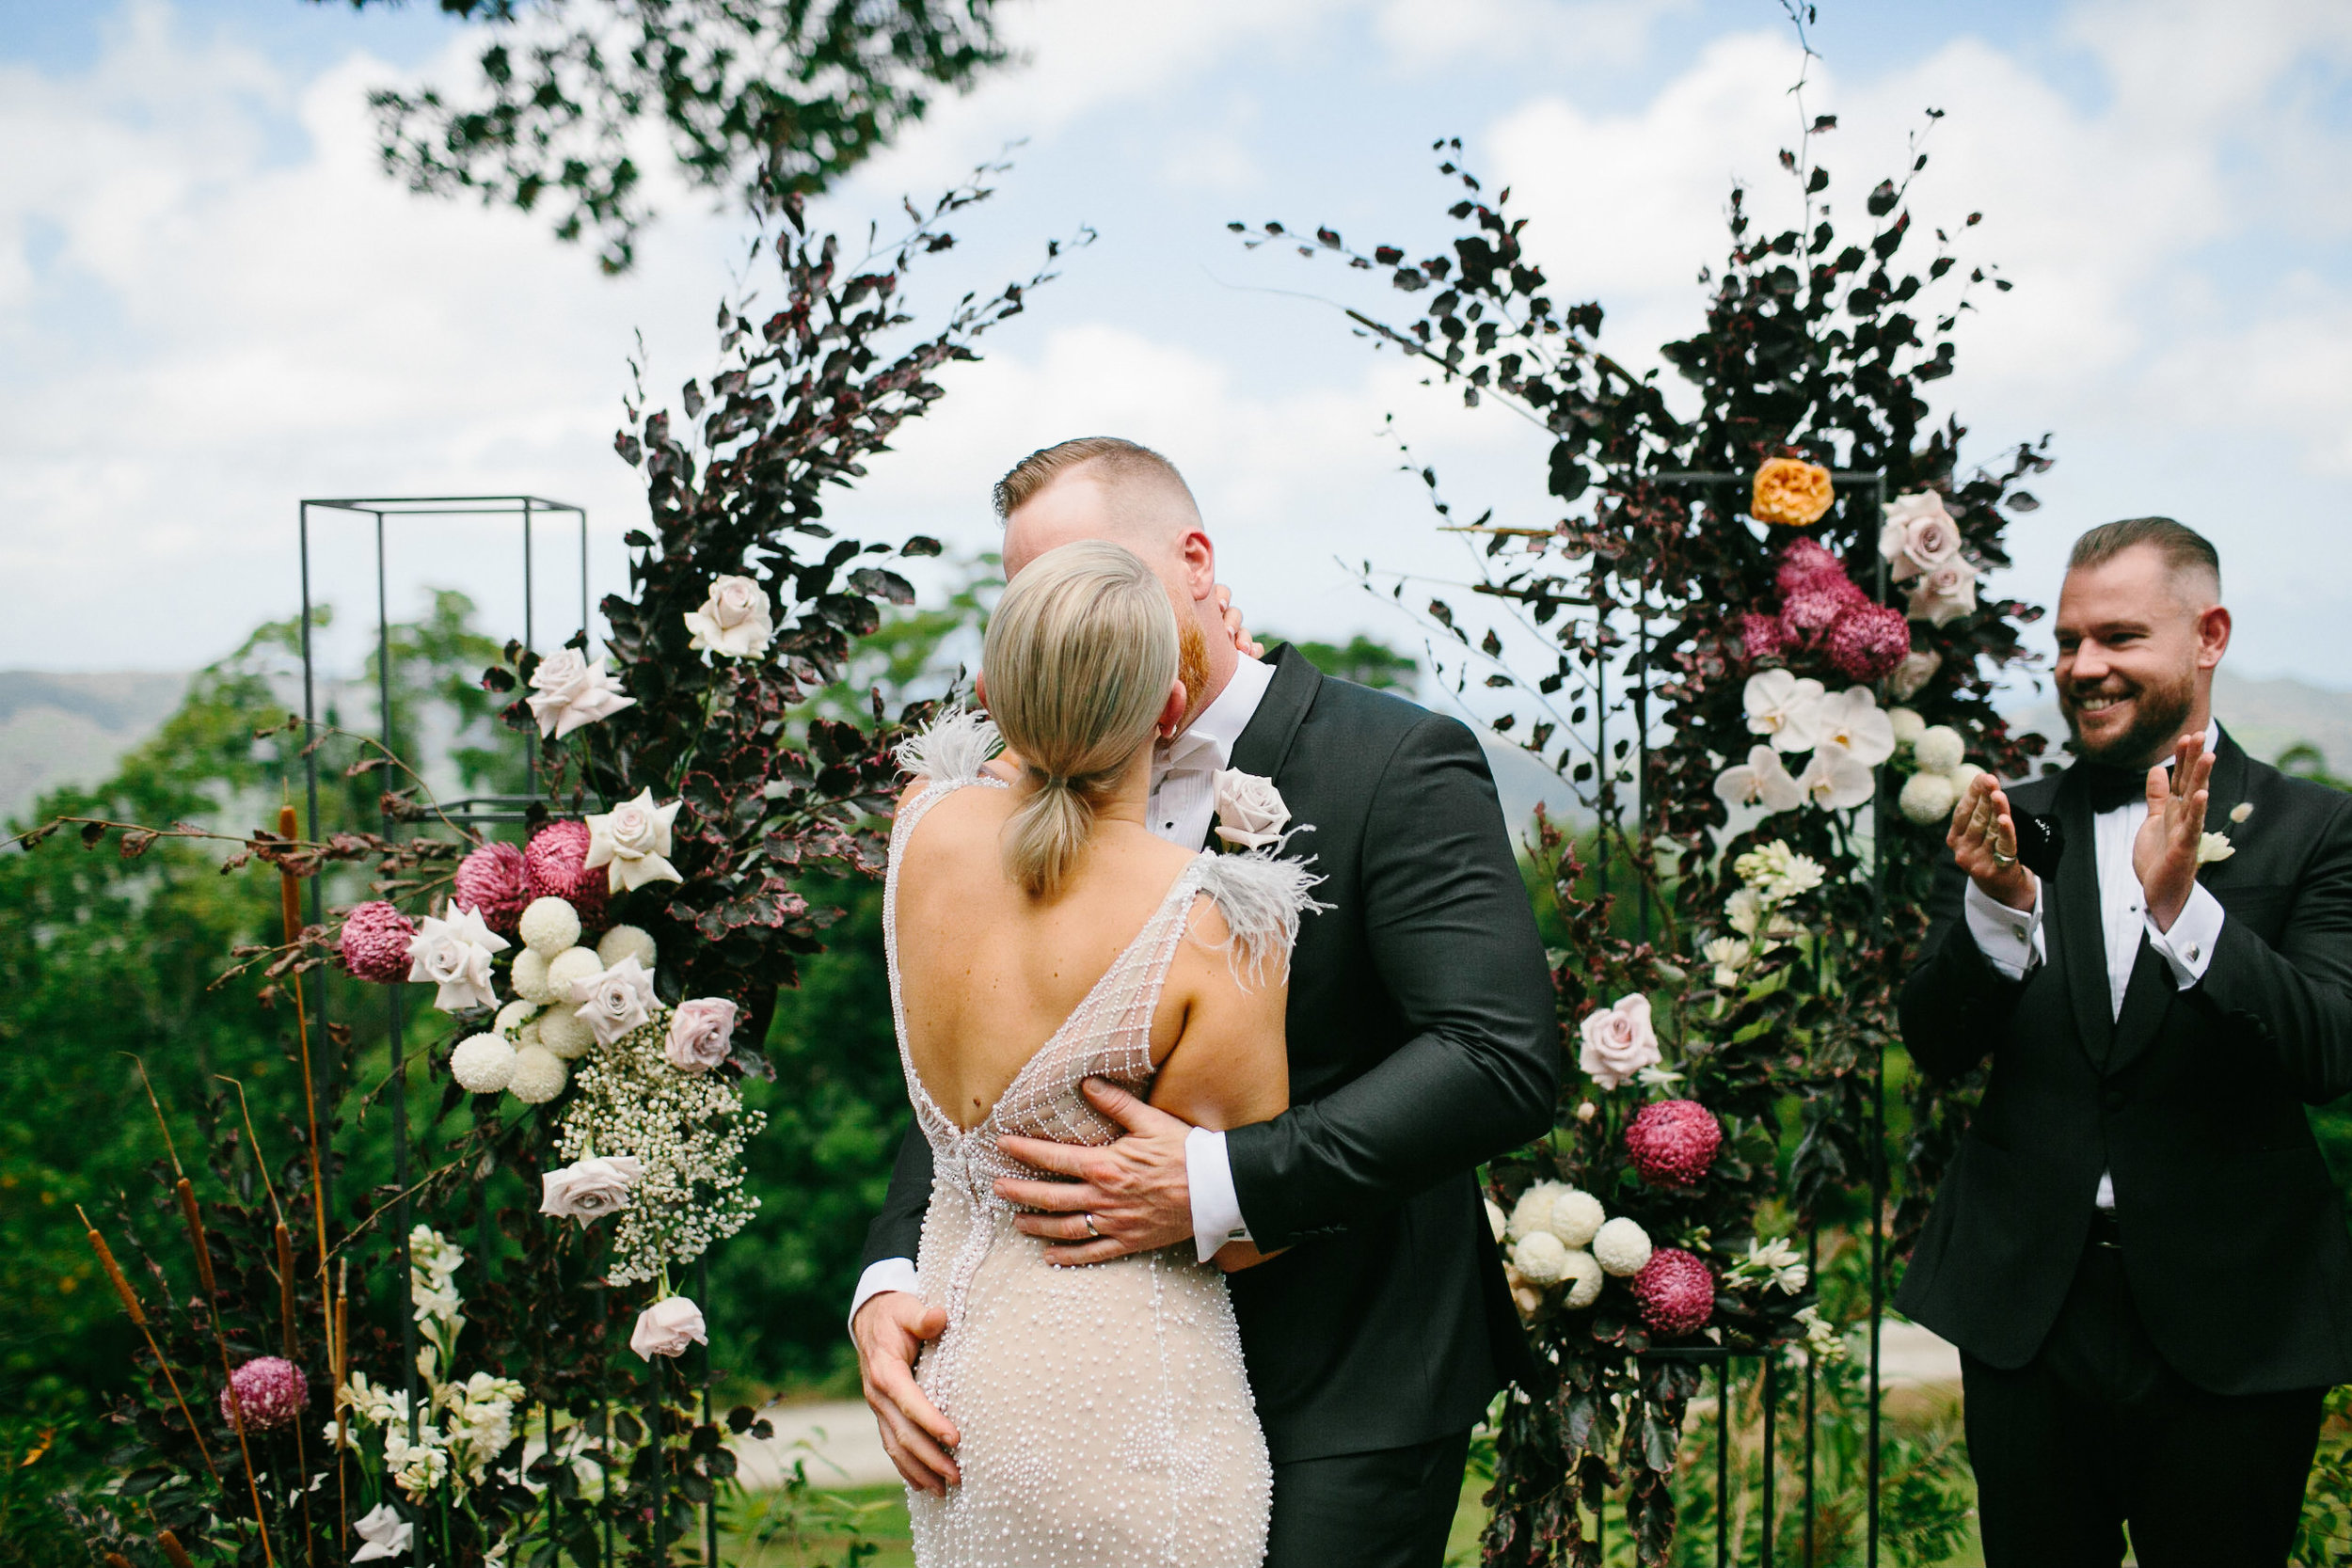 SB_w-384.jpgBloodwood Botanica | First kiss Happy couple byron bay wedding flowers